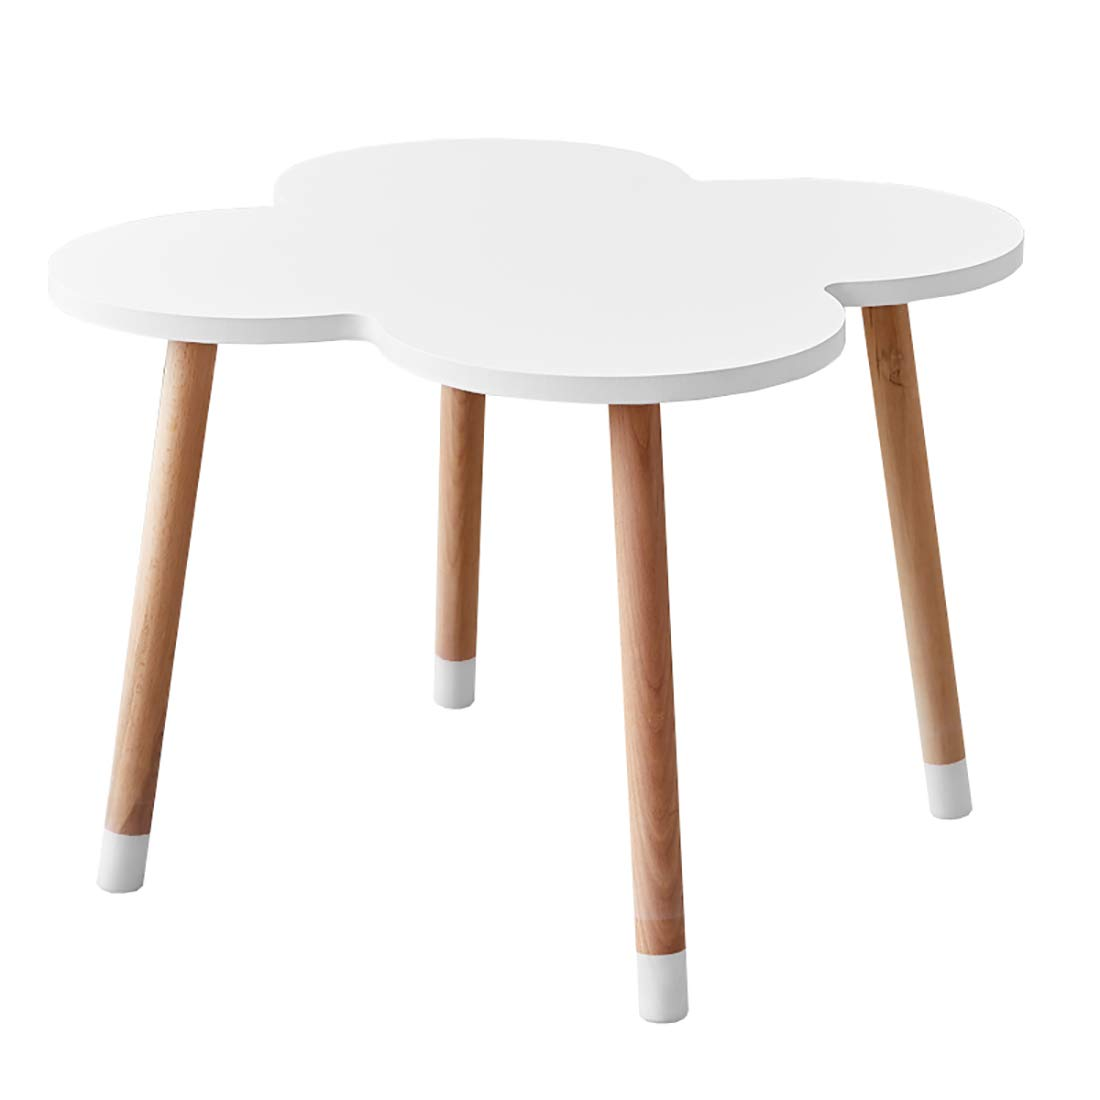 DAXIONG Deluxe Hardwood Four-Leaf Clover Activity Play Table for Kids, Solid Wood Childrens Table for Playroom/Daycare/Preschool, Sturdy and Safe Materials by DAXIONG